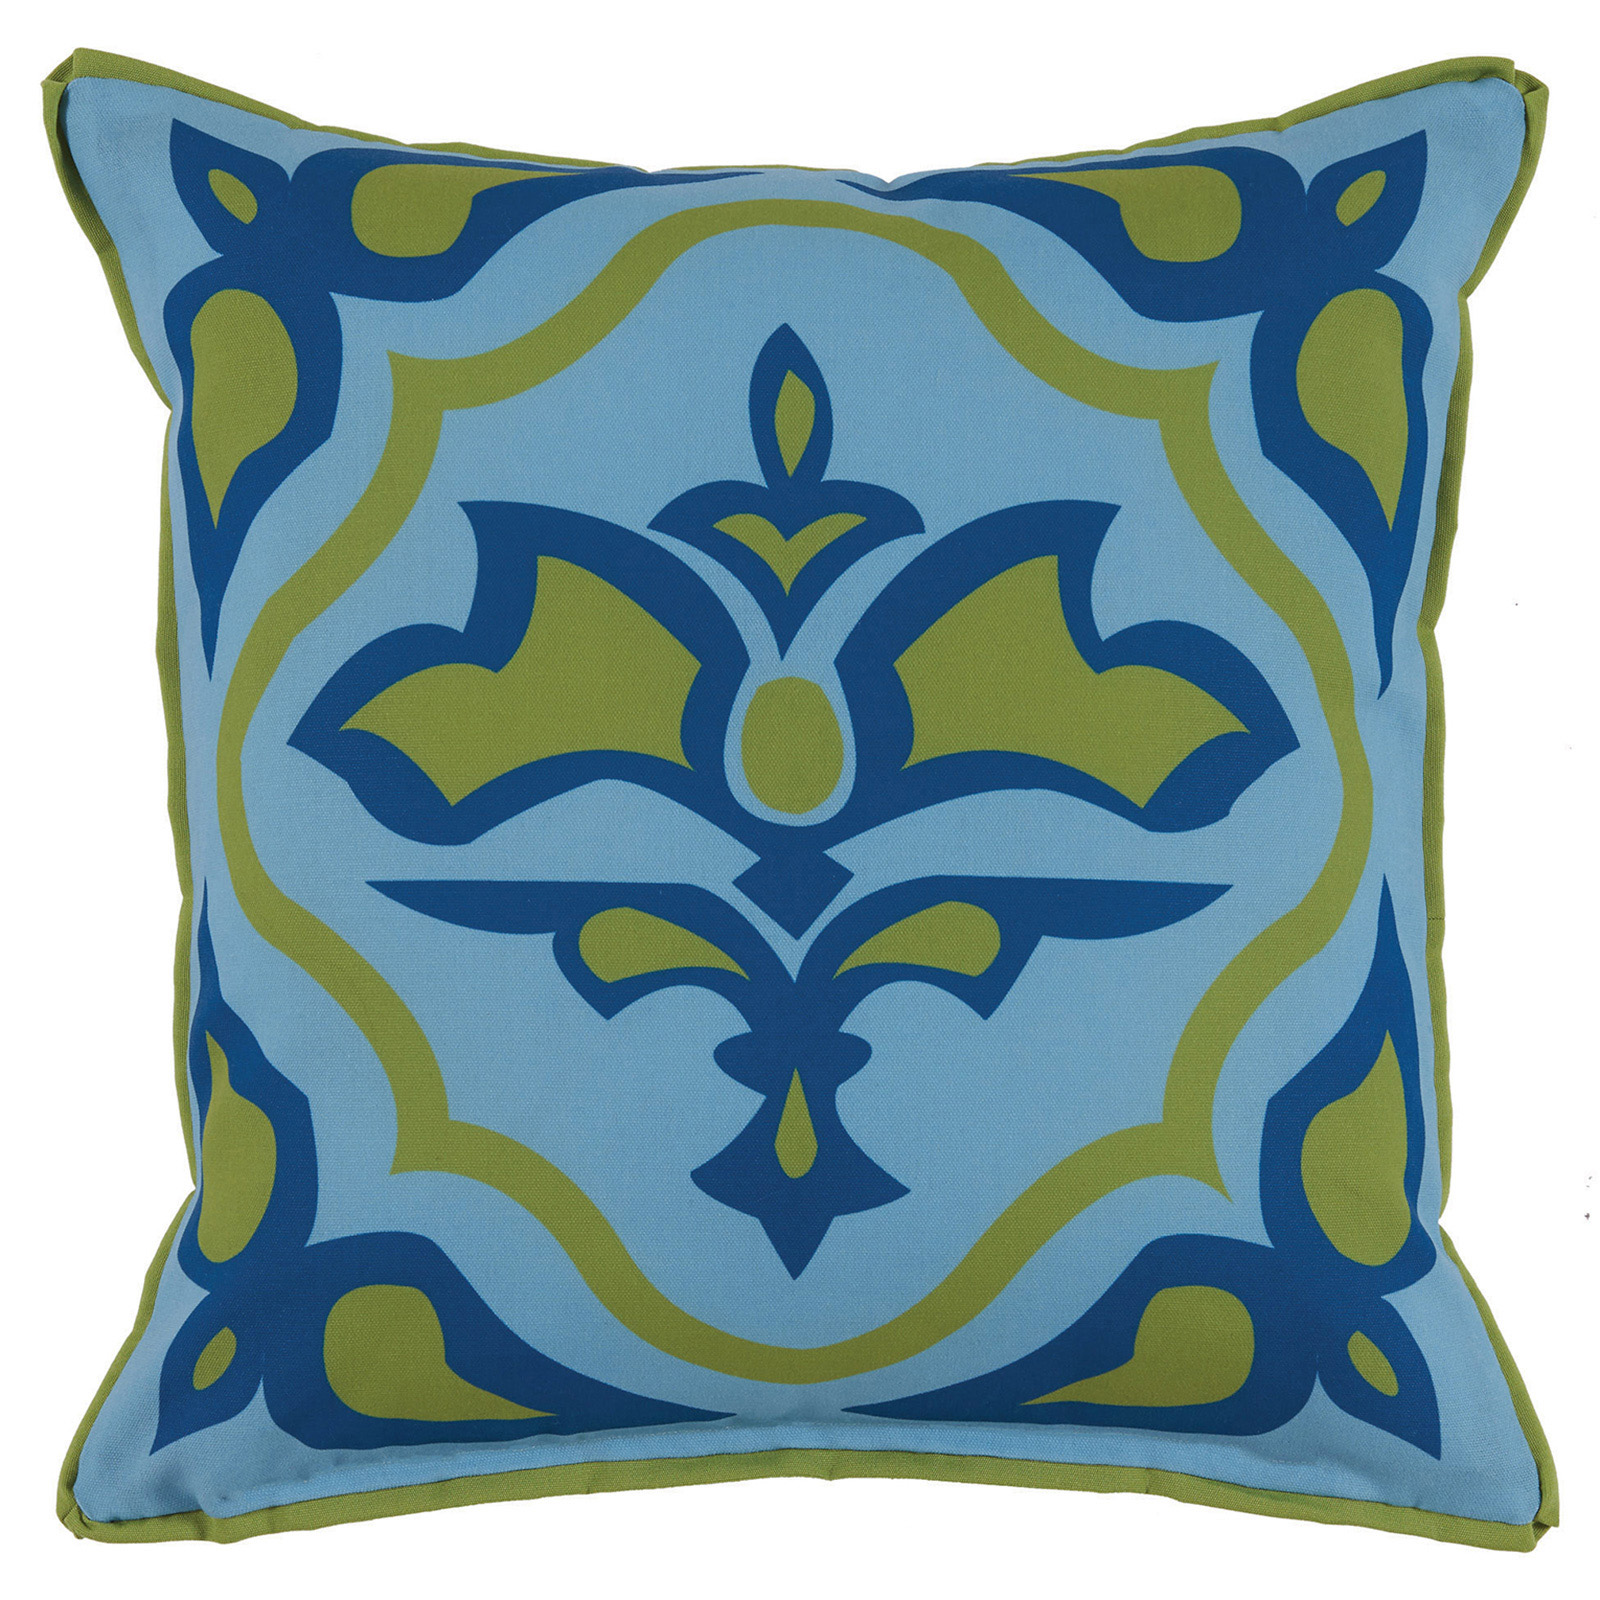 Julie Regency Abstract Olive Blue Outdoor Pillow - 20x20